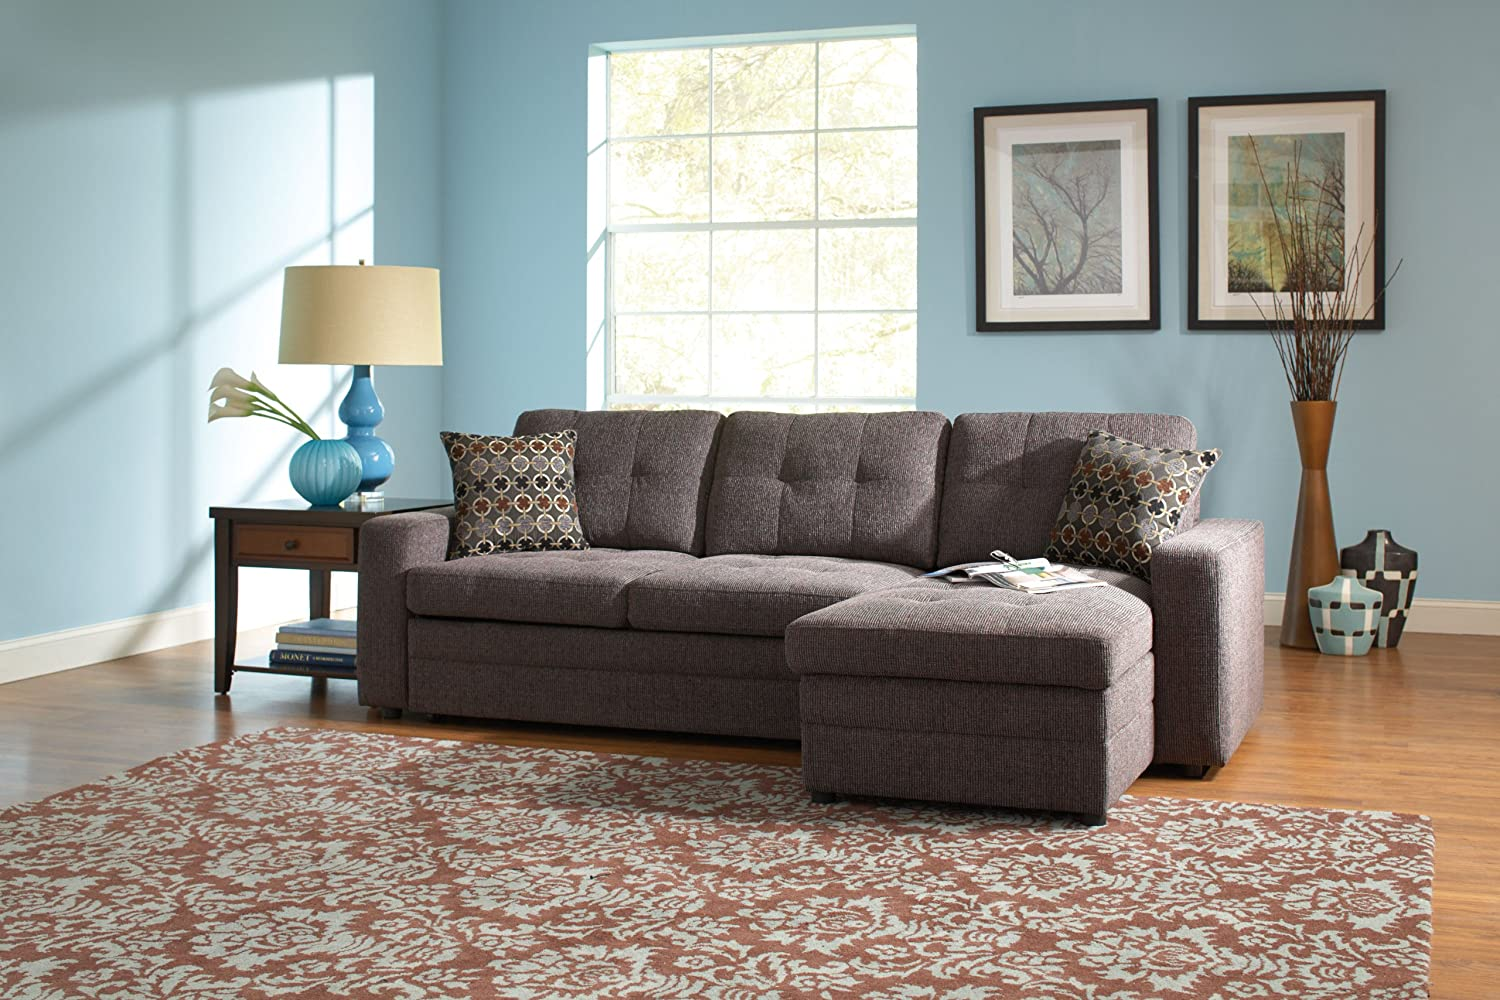 Gus 501677 98 sectional sofa with pull out bed chaise kiln dried hardwood frame sinuous spring base track arms plush cushions and fabric upholstery in